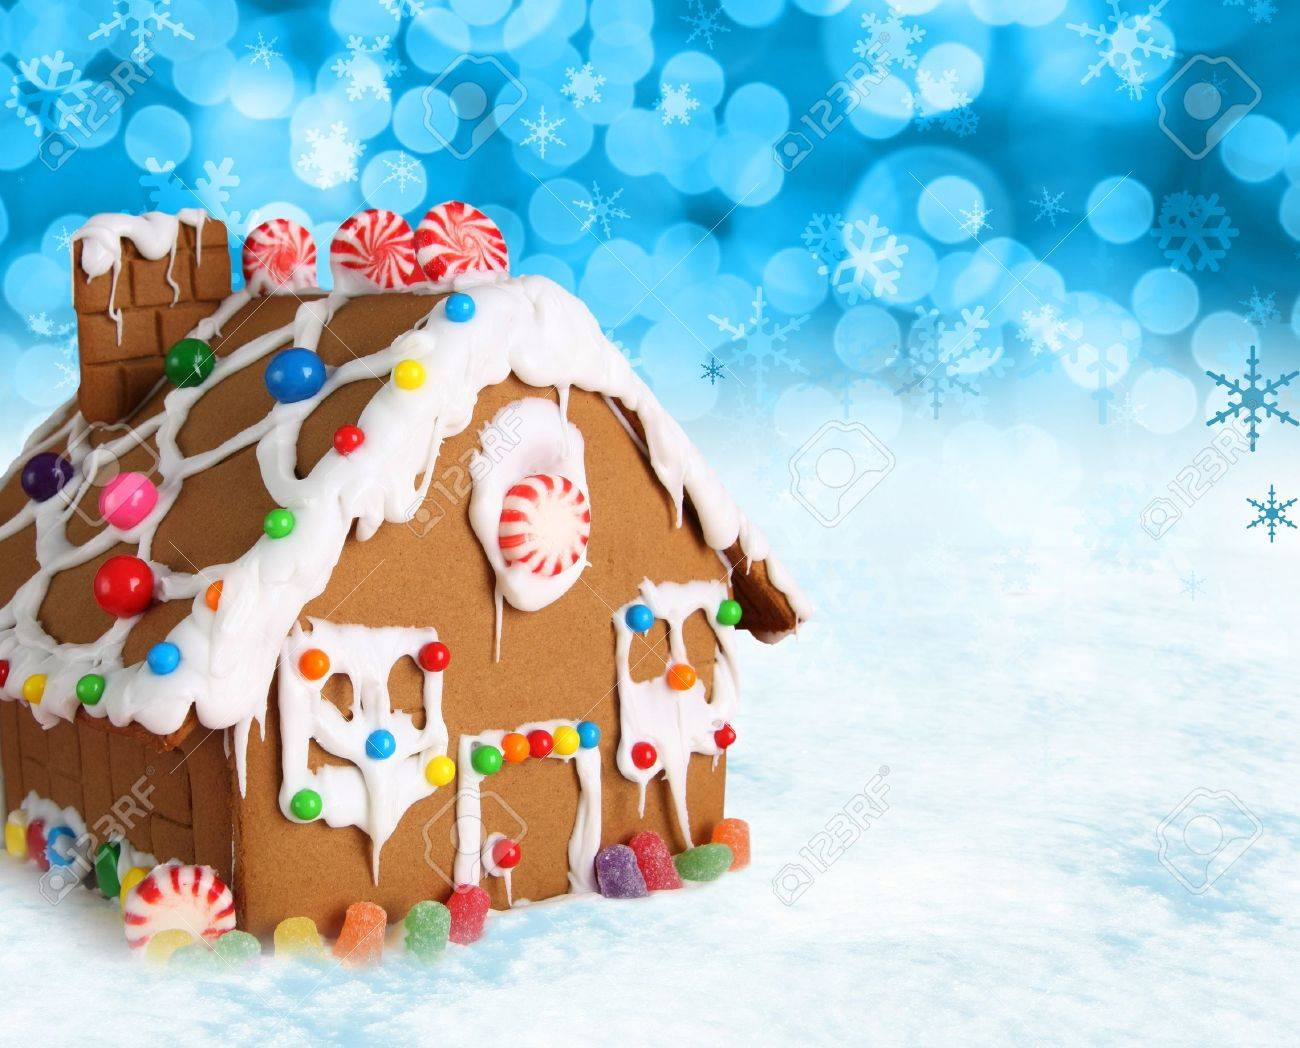 Christmas Gingerbread House Background.Gingerbread House On A Festive Christmas Snow Background